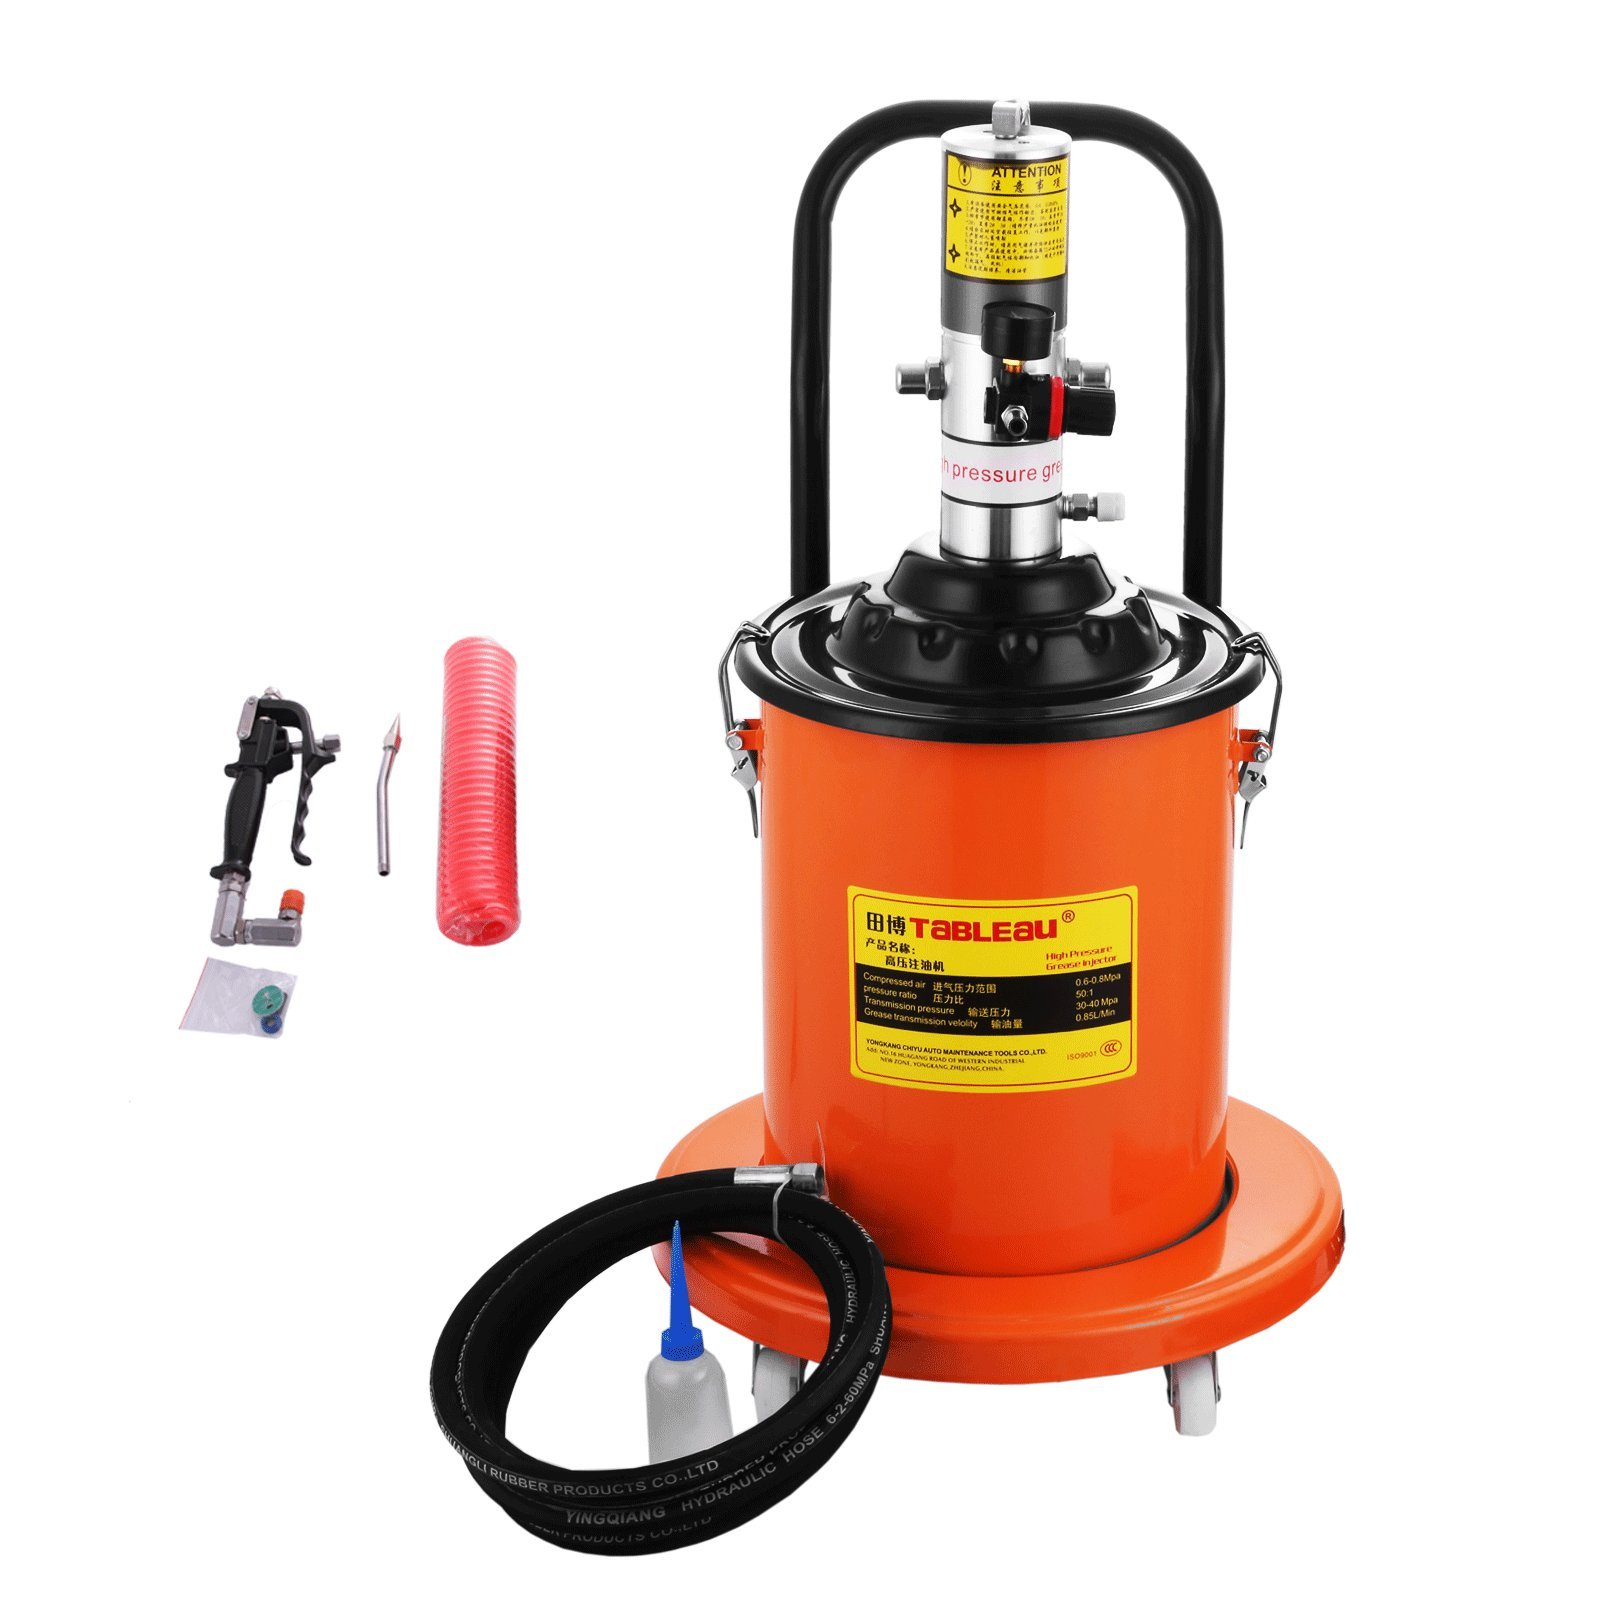 Happybuy Grease Pump 5 Gallon Electric Grease Pump Air-Operated Portable Grease Pump 0.85L/Min High Pressure Grease Pump